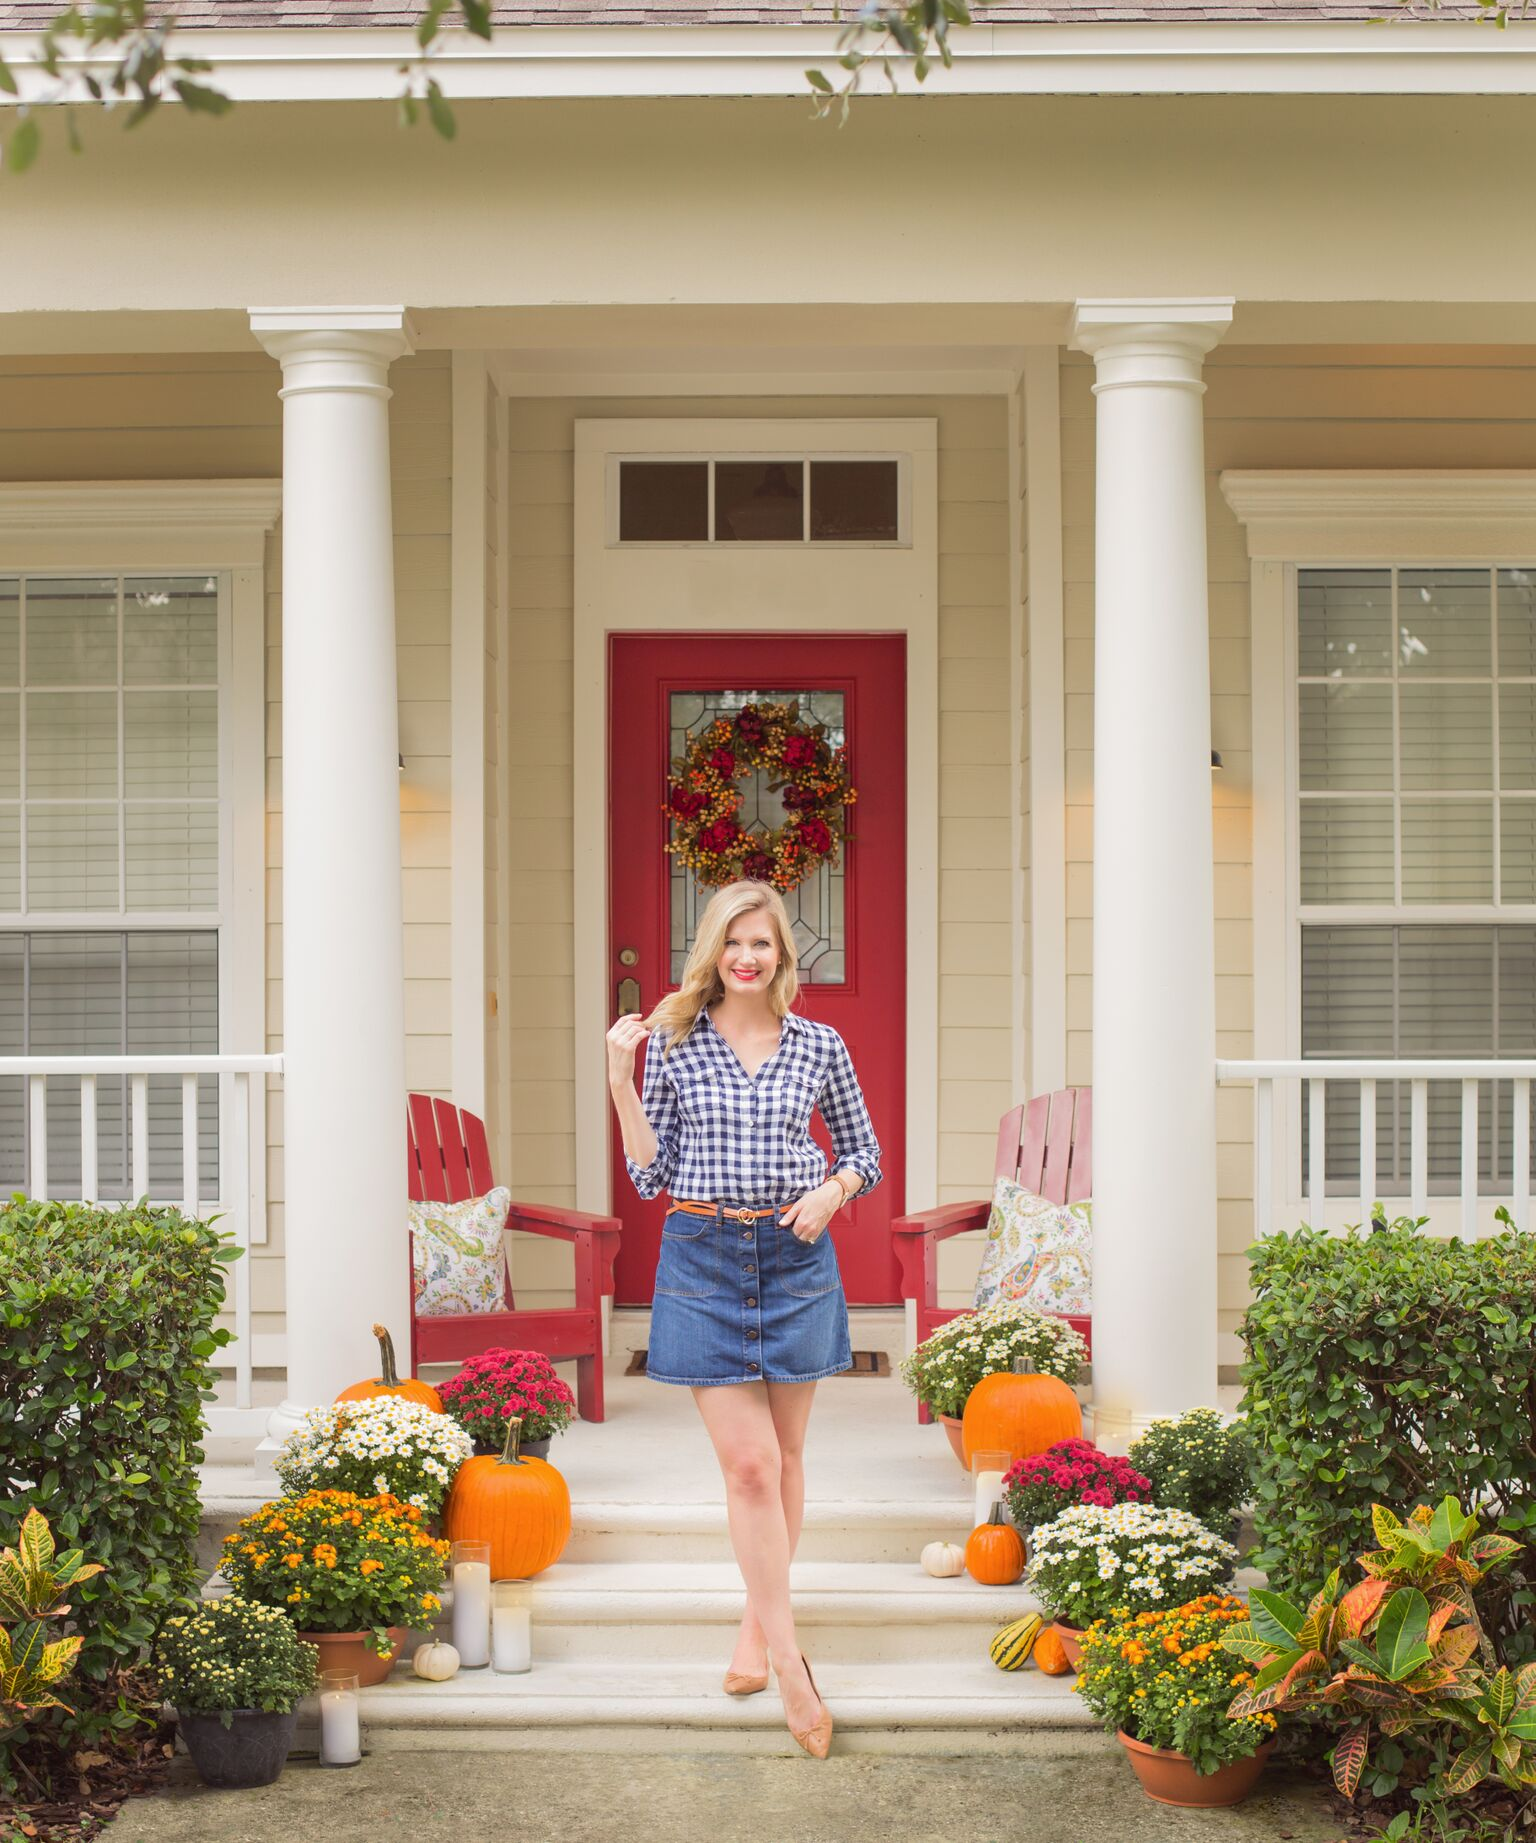 Fall Front Door: Fall Front Door Decor: In 4 Easy Steps